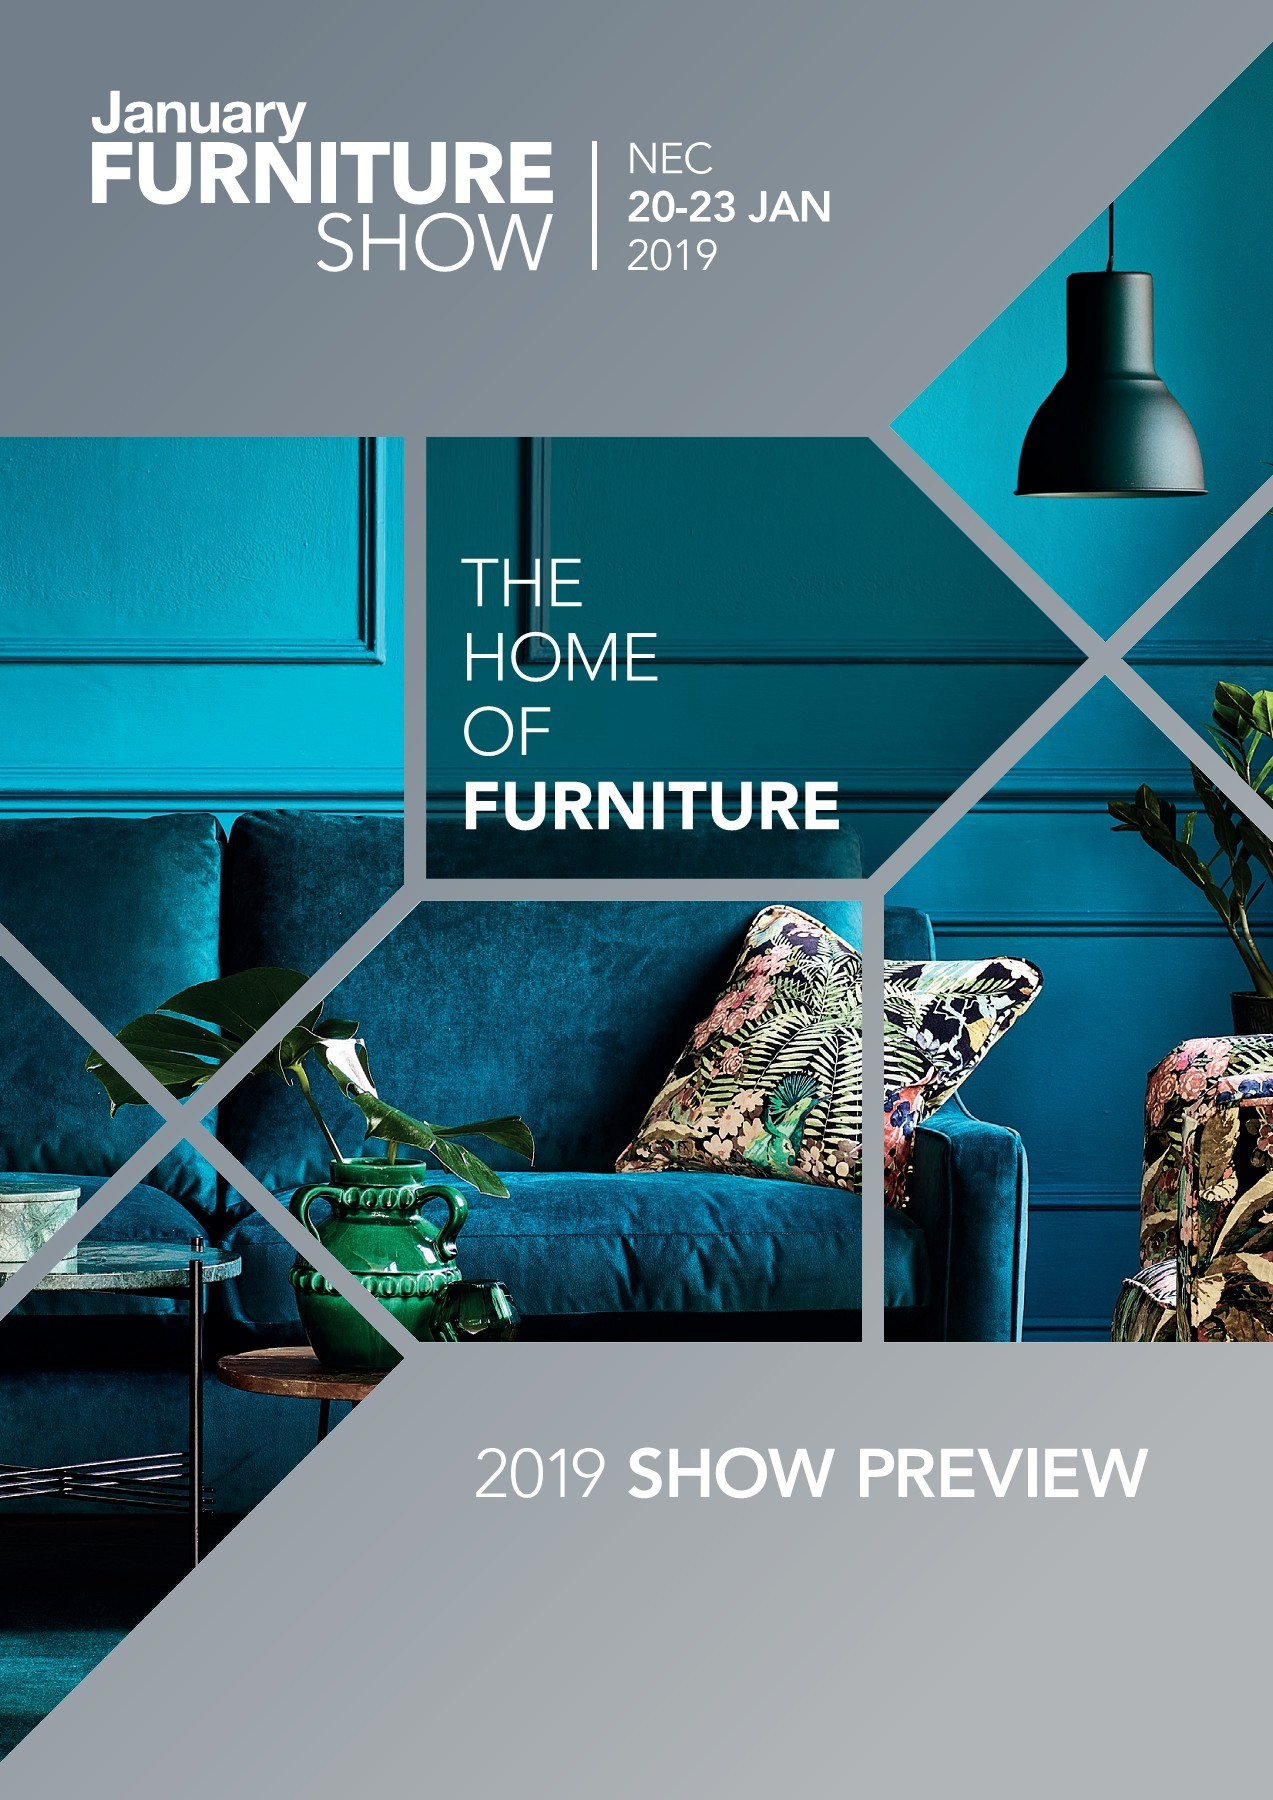 Meubles Rauch France January Furniture Show 2019 Pages 1 32 Text Version Fliphtml5